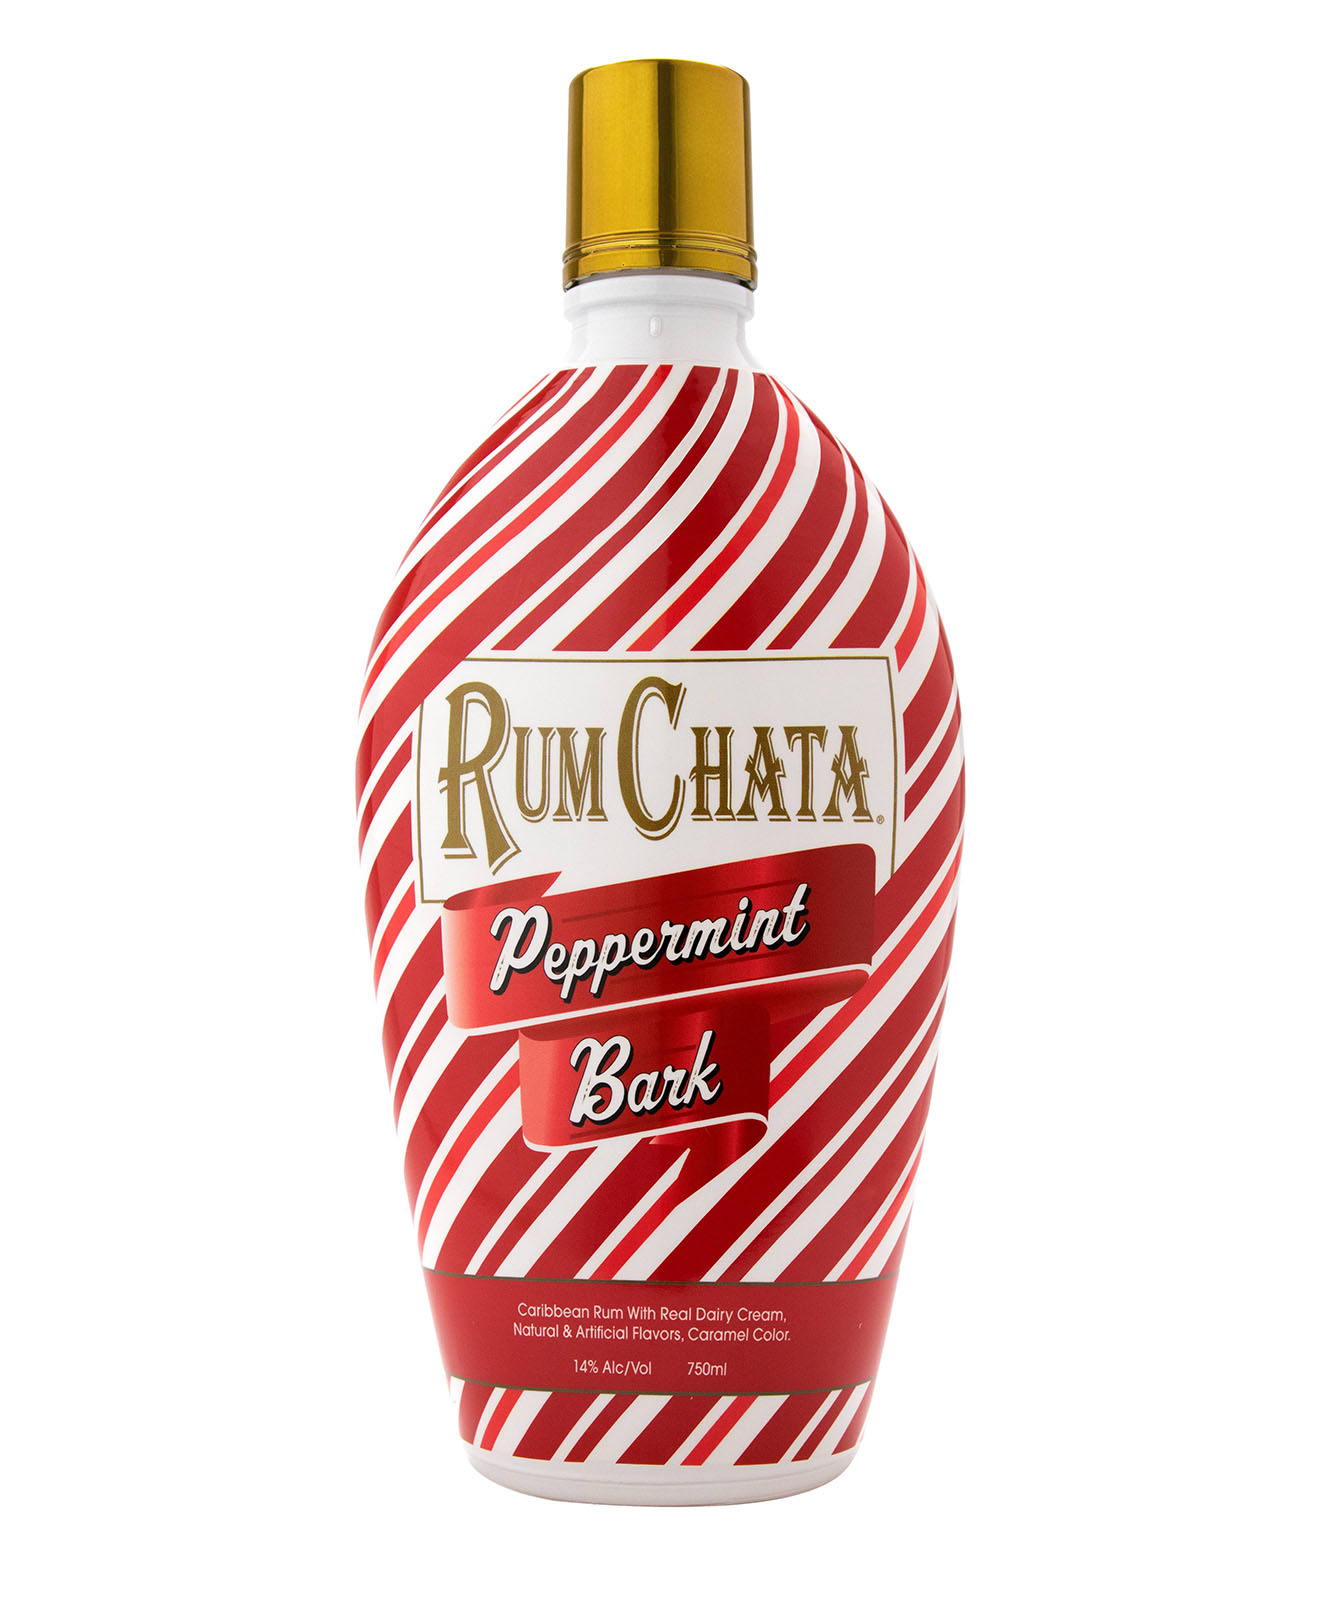 Rumchata — Peppermint Bark